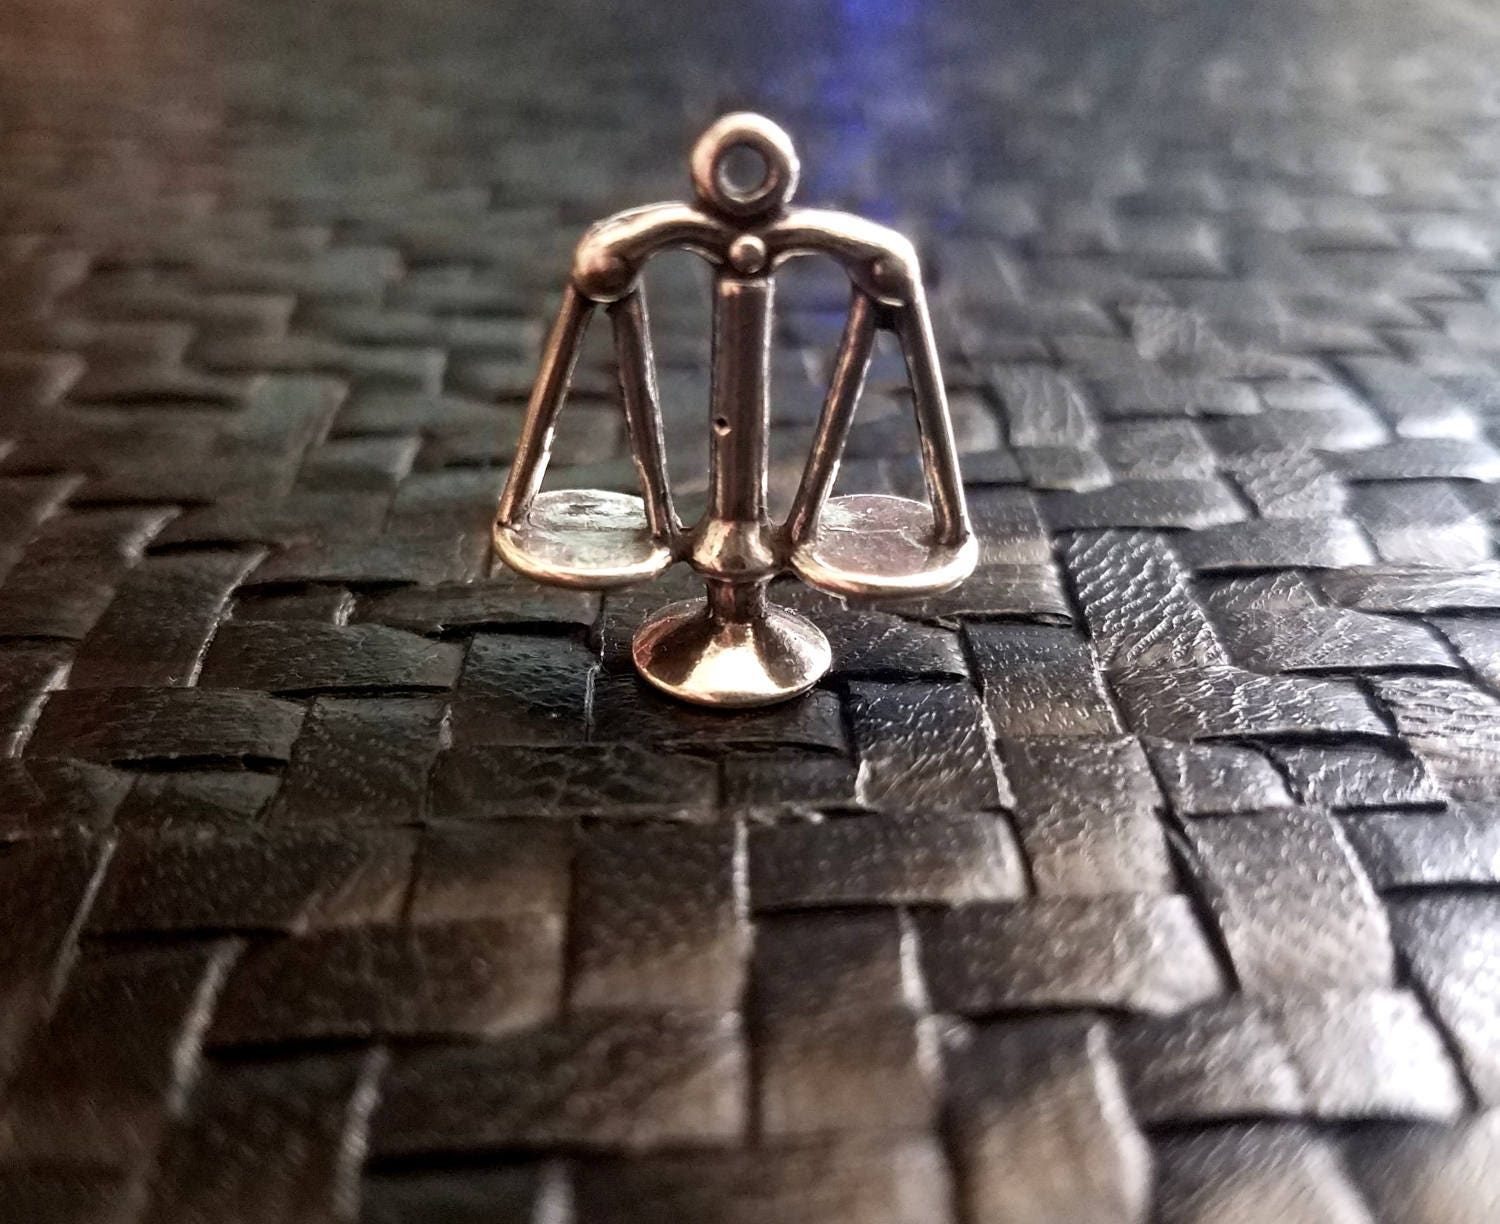 sterling silver libra scales balance charm pendant detailed 3d zodiac justice balanced weights. Black Bedroom Furniture Sets. Home Design Ideas